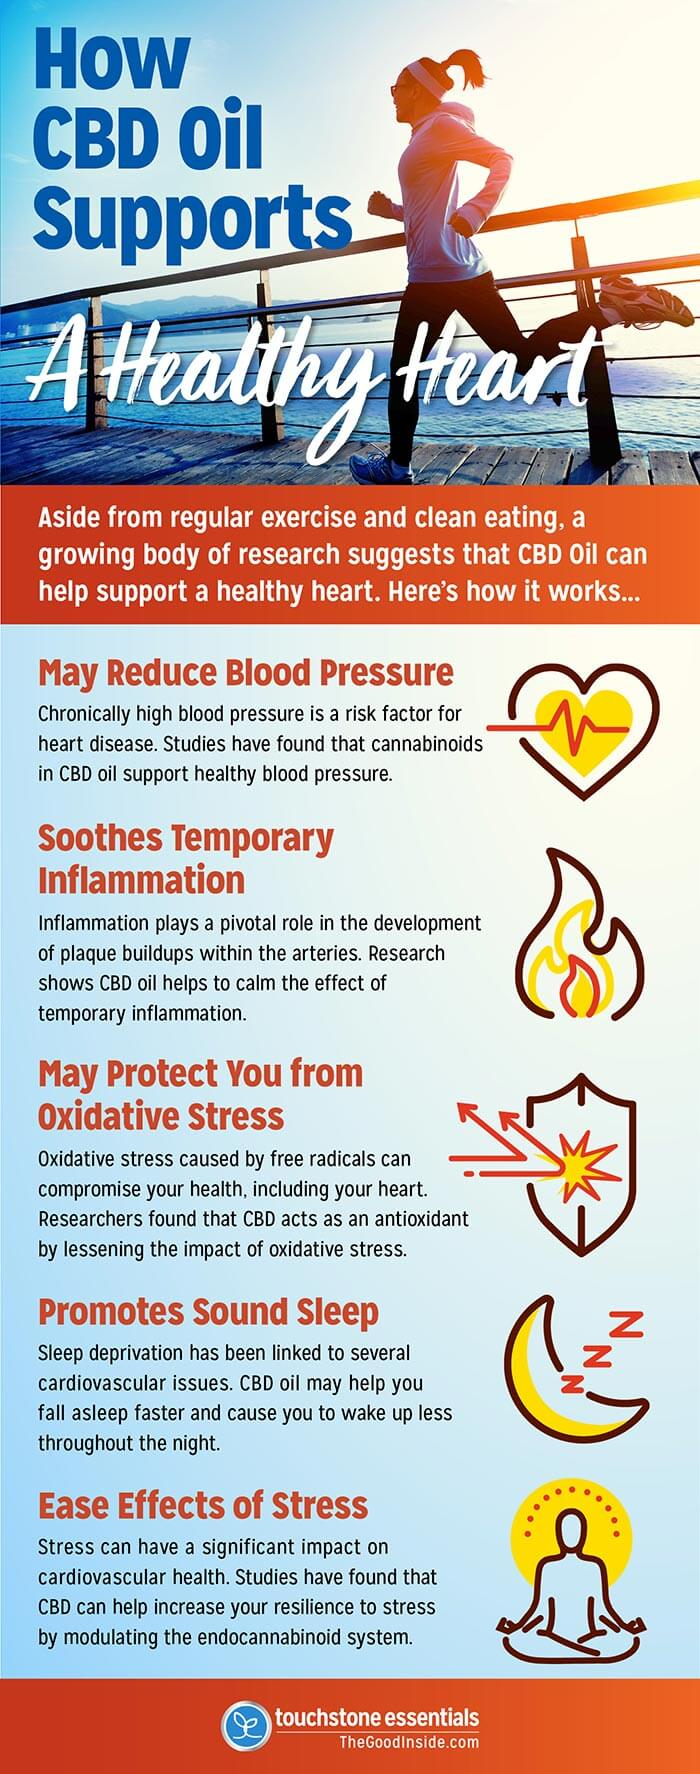 How CBD Oil Supports a Healthy Heart